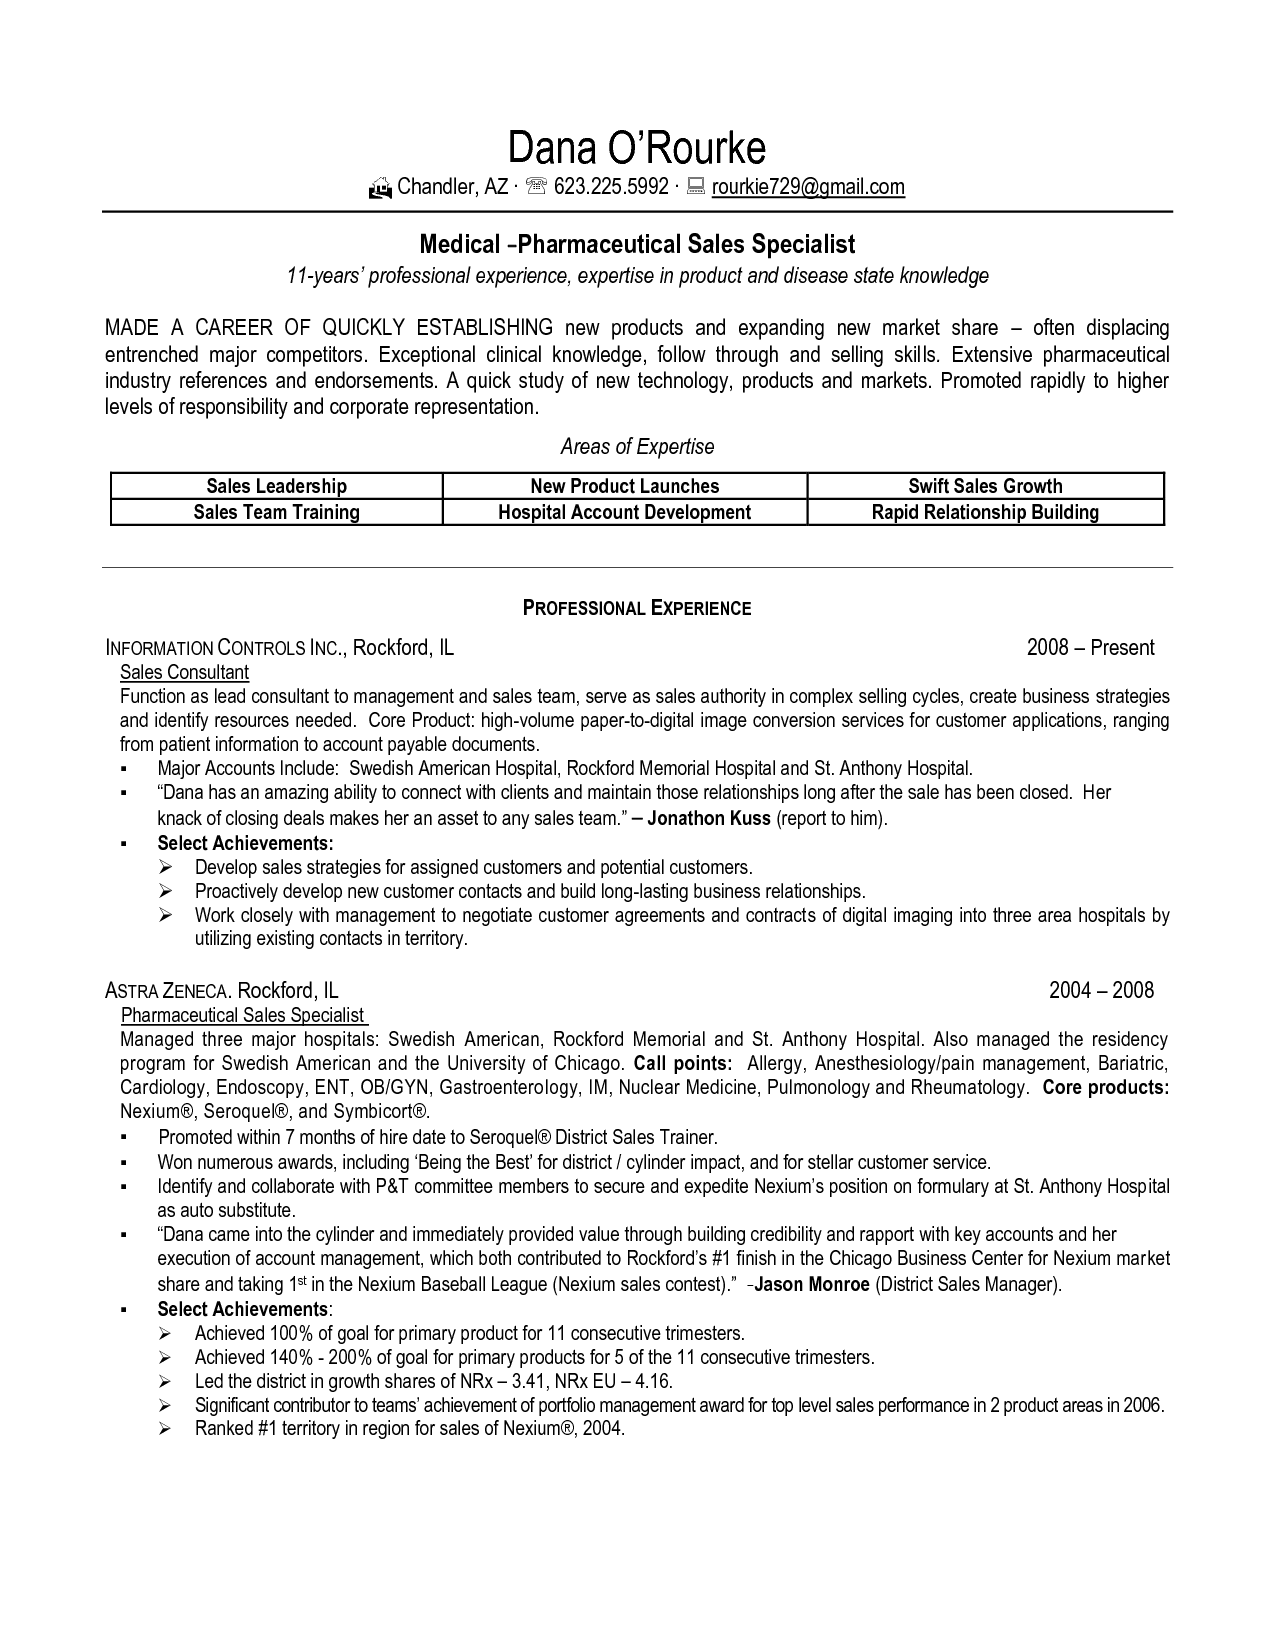 Wonderful Sample Resume For Pharmaceutical Industry Sample Resume For Pharmaceutical  Industry Sample Resume For Pharmaceutical Sales Sample  Resume For Pharmaceutical Sales